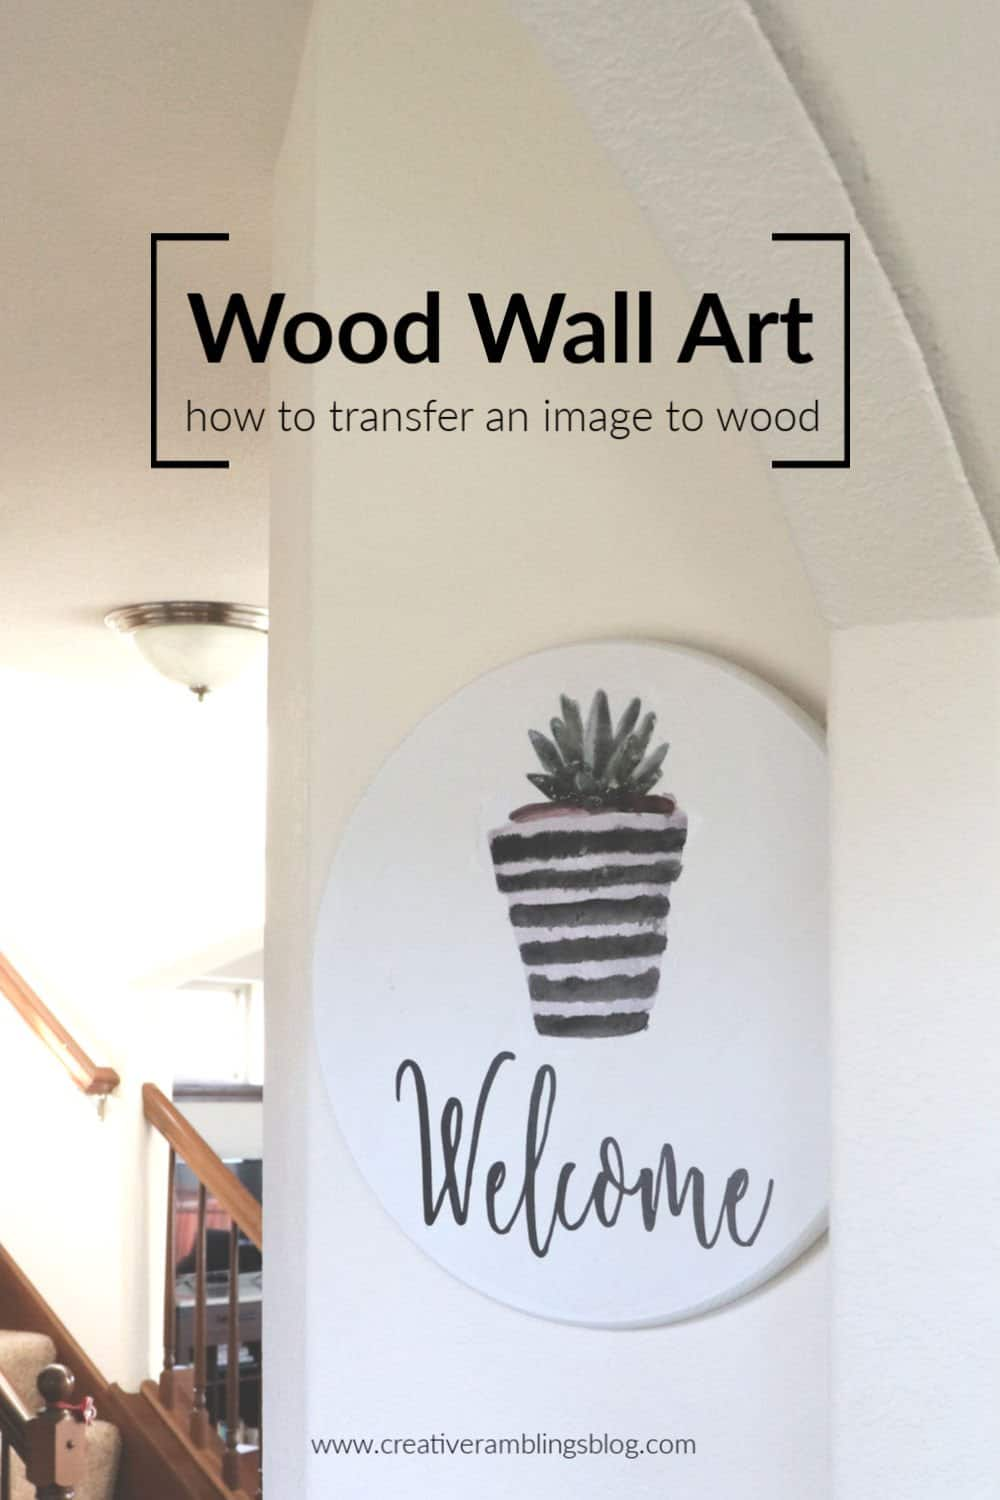 wood wall art - how to transfer an image to wood